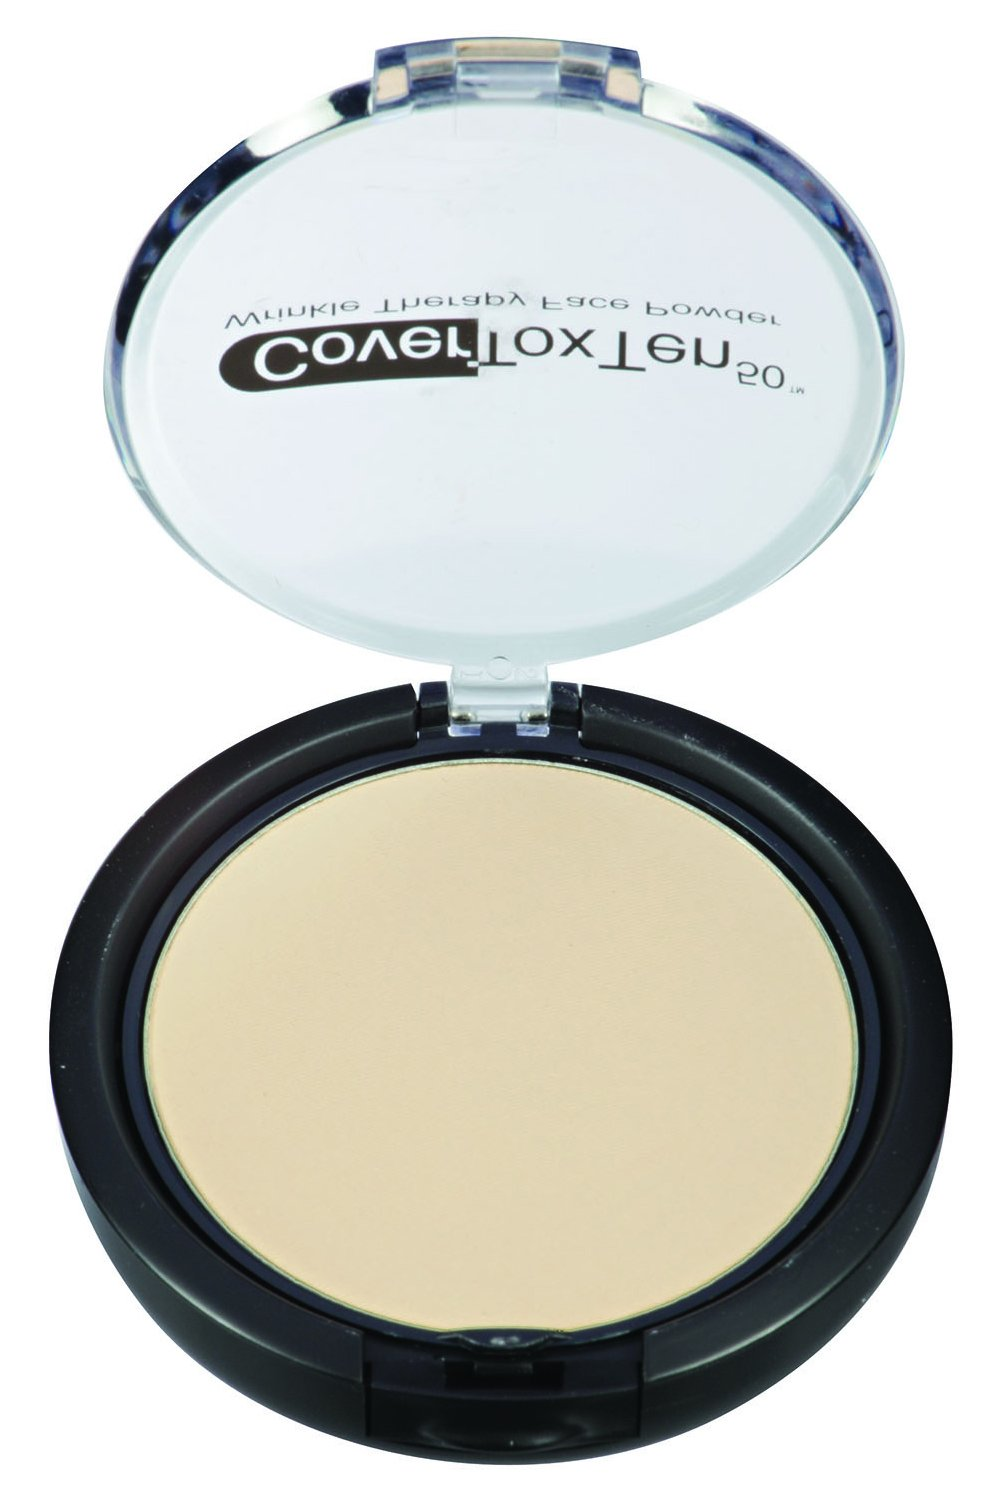 Physicians Formula Covertoxten Wrinkle Therapy Face Powder, Translucent Light, 0.3-Ounces by Physicians Formula